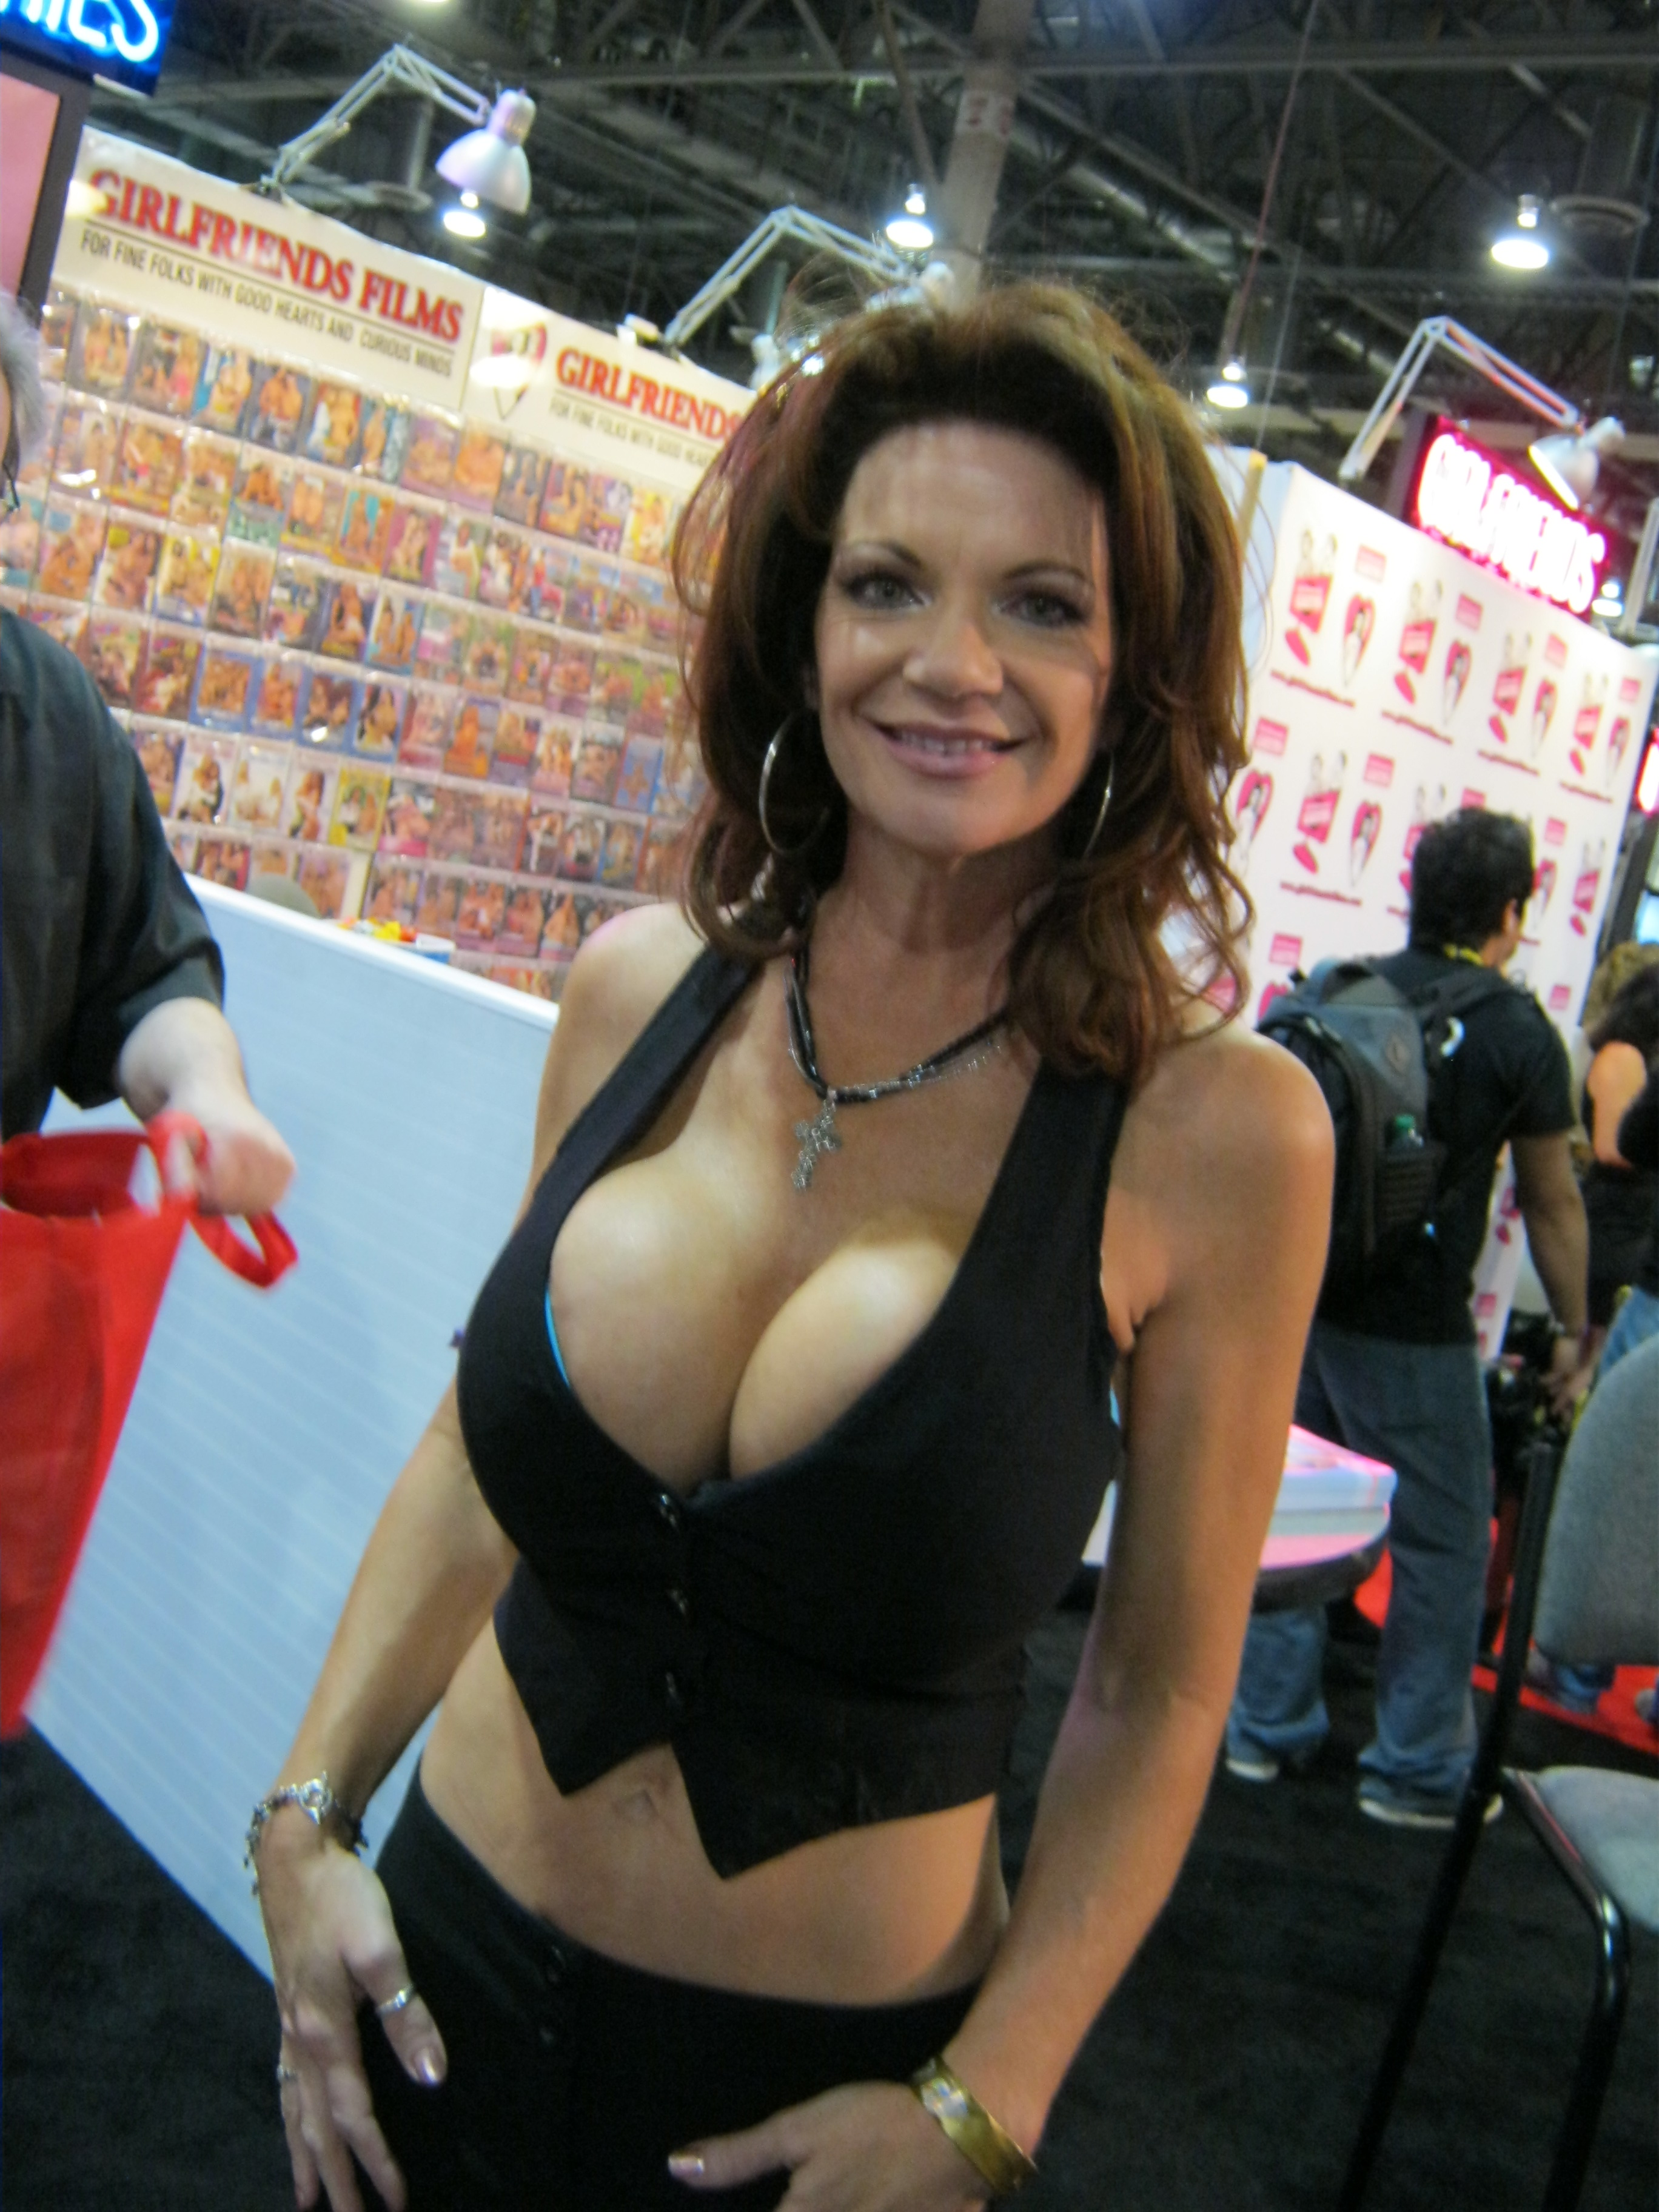 a few photos from the 2011 avn adult expo - free speech coalition